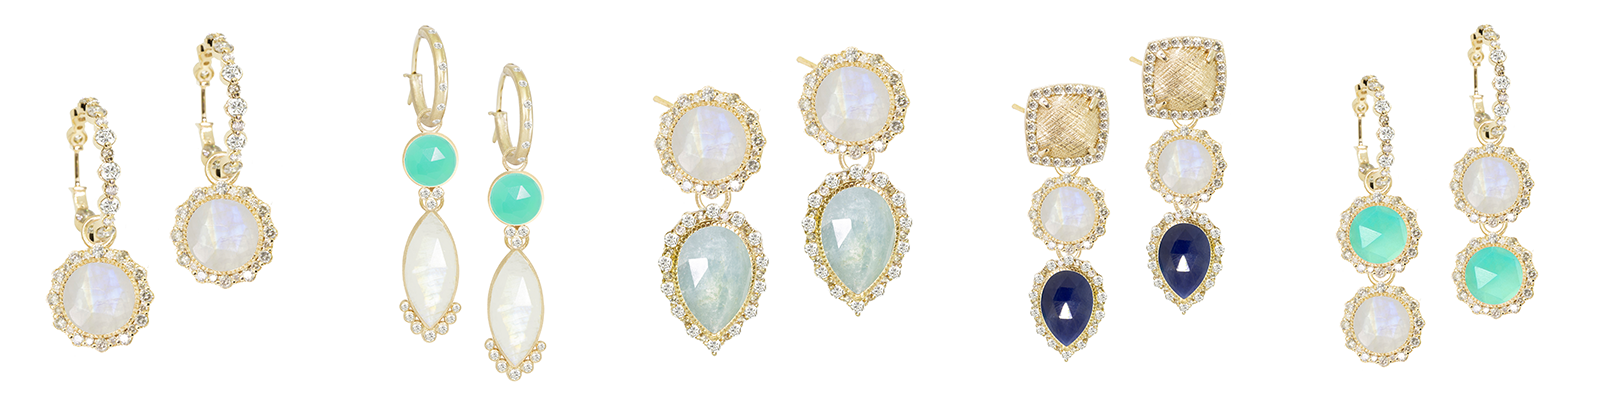 Nina Nguyen Designs Interchangeable Silver Earrings Labradorite Studs with  Marquise Moonstone Jackets